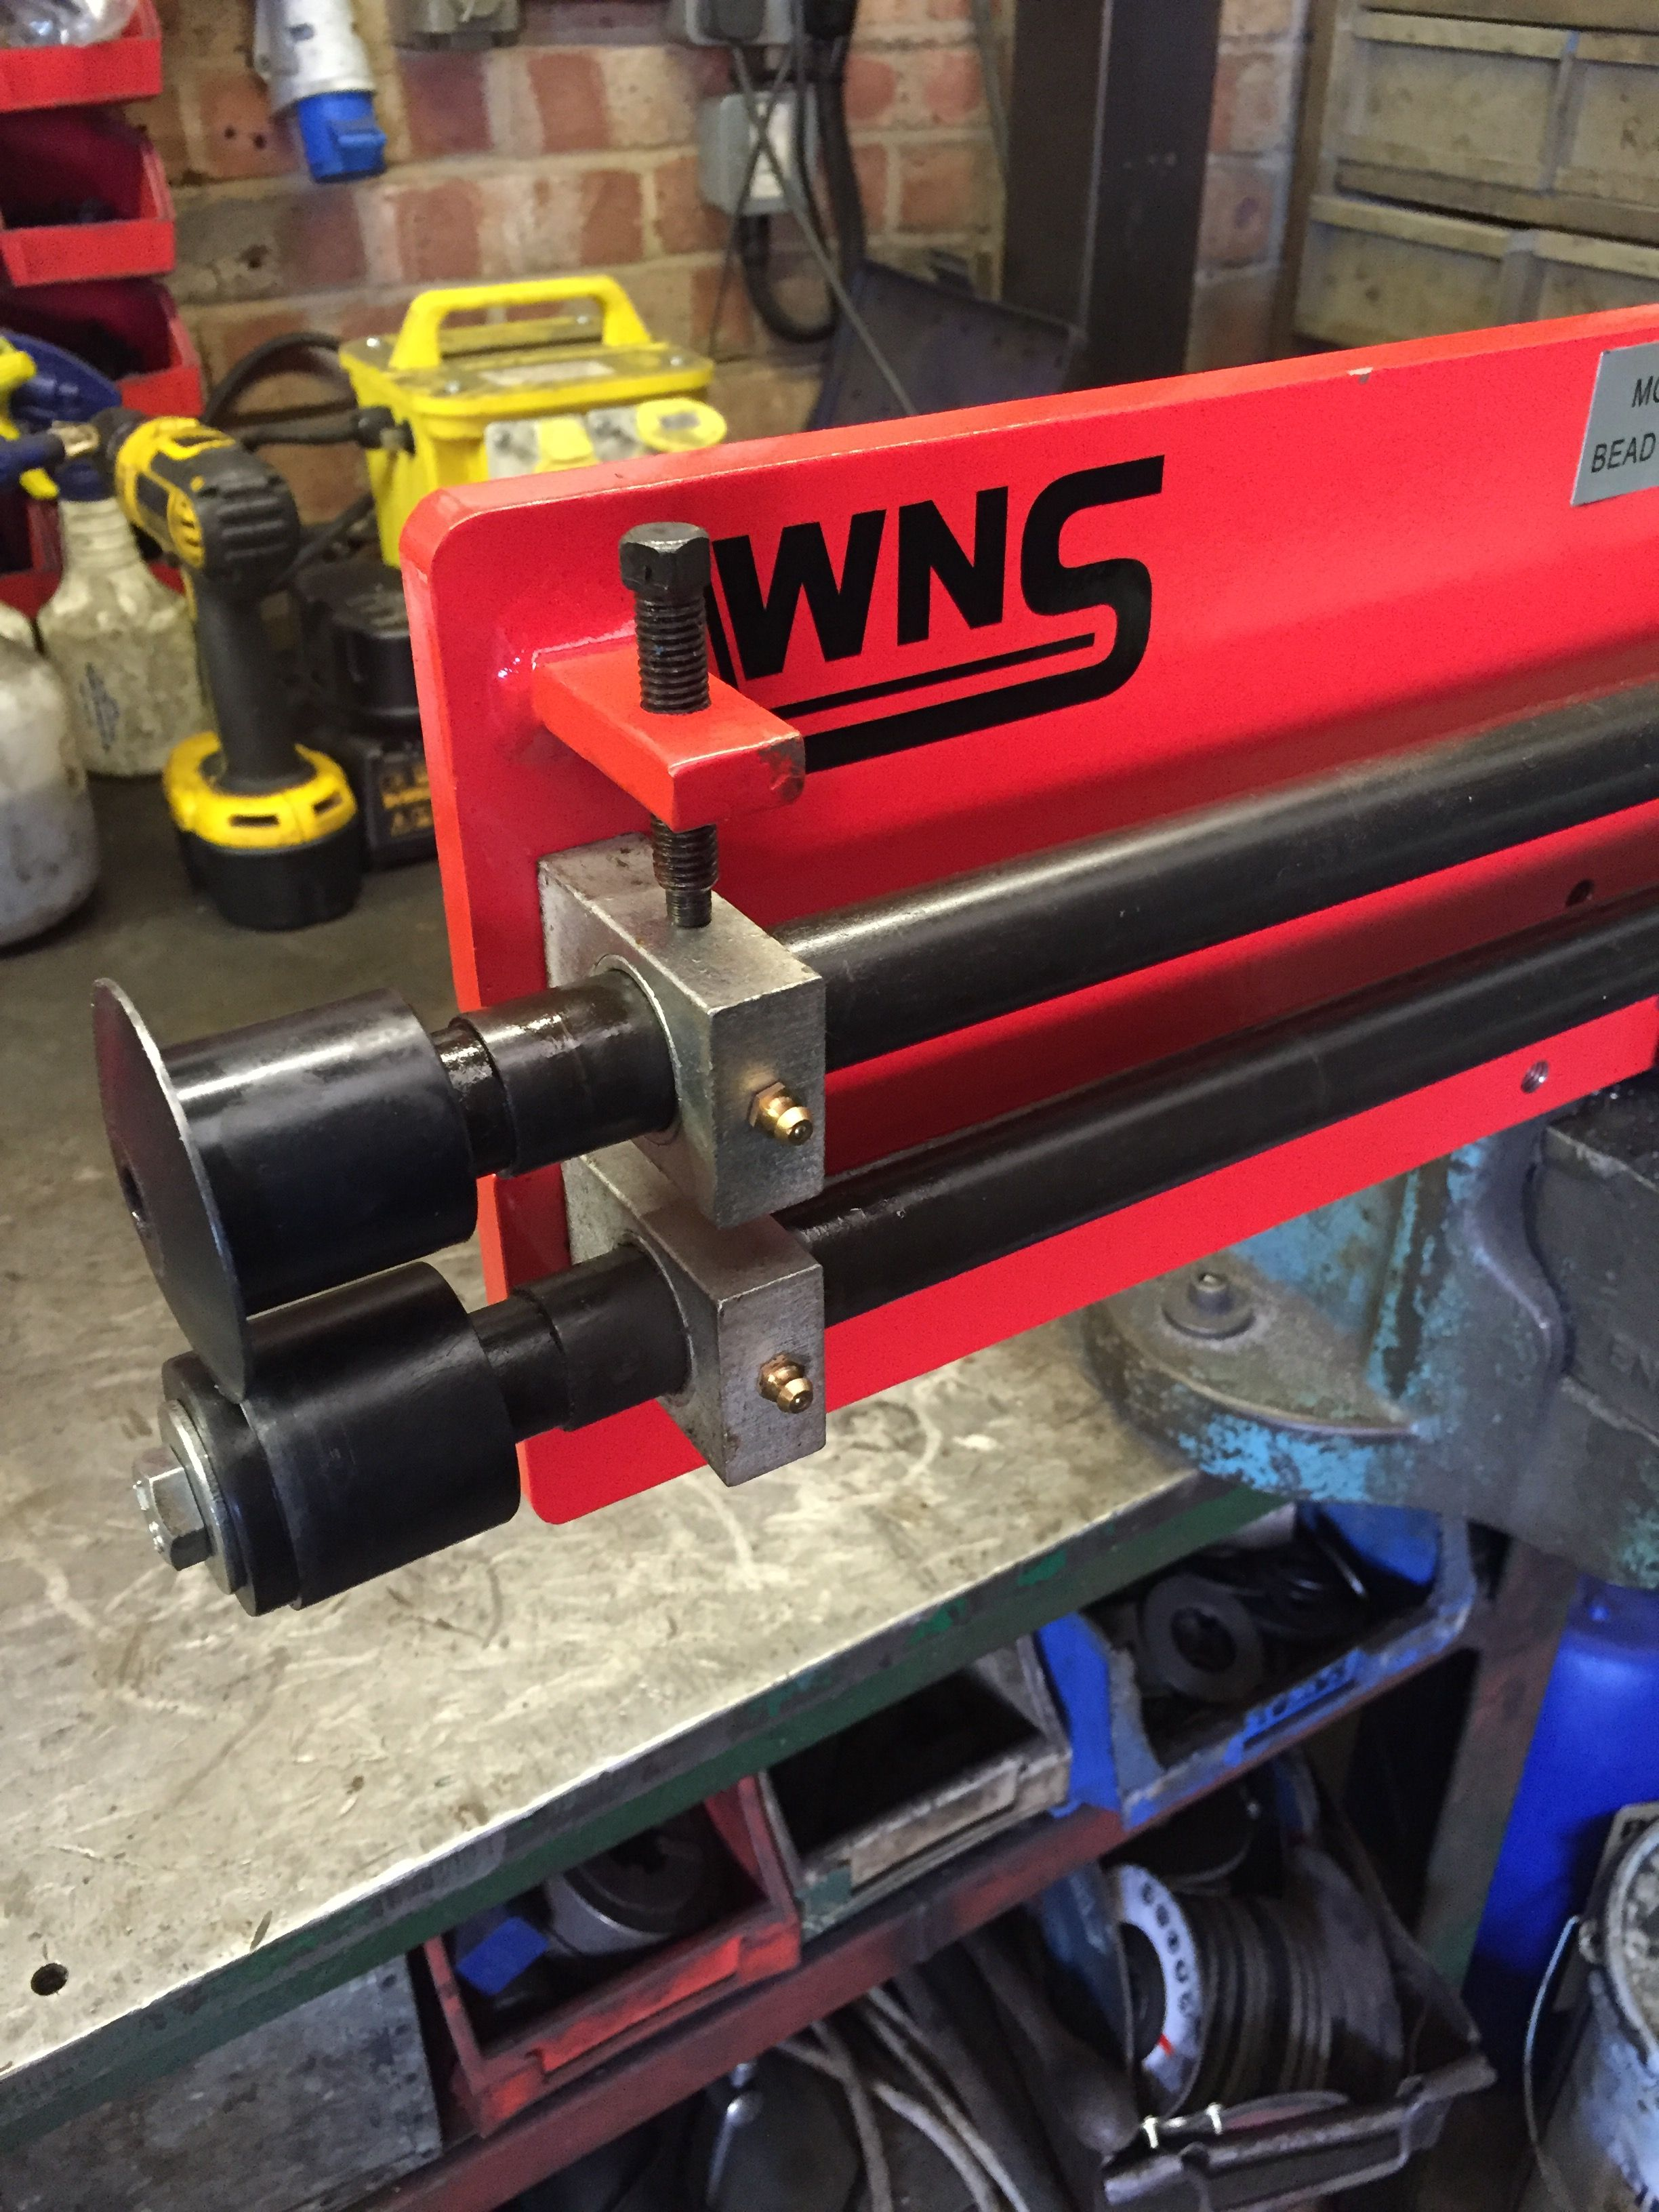 Wns Bead Roller Rolls Jenny Roll Set Sheet Metal Tools Metal Fabrication Tools Metal Working Tools